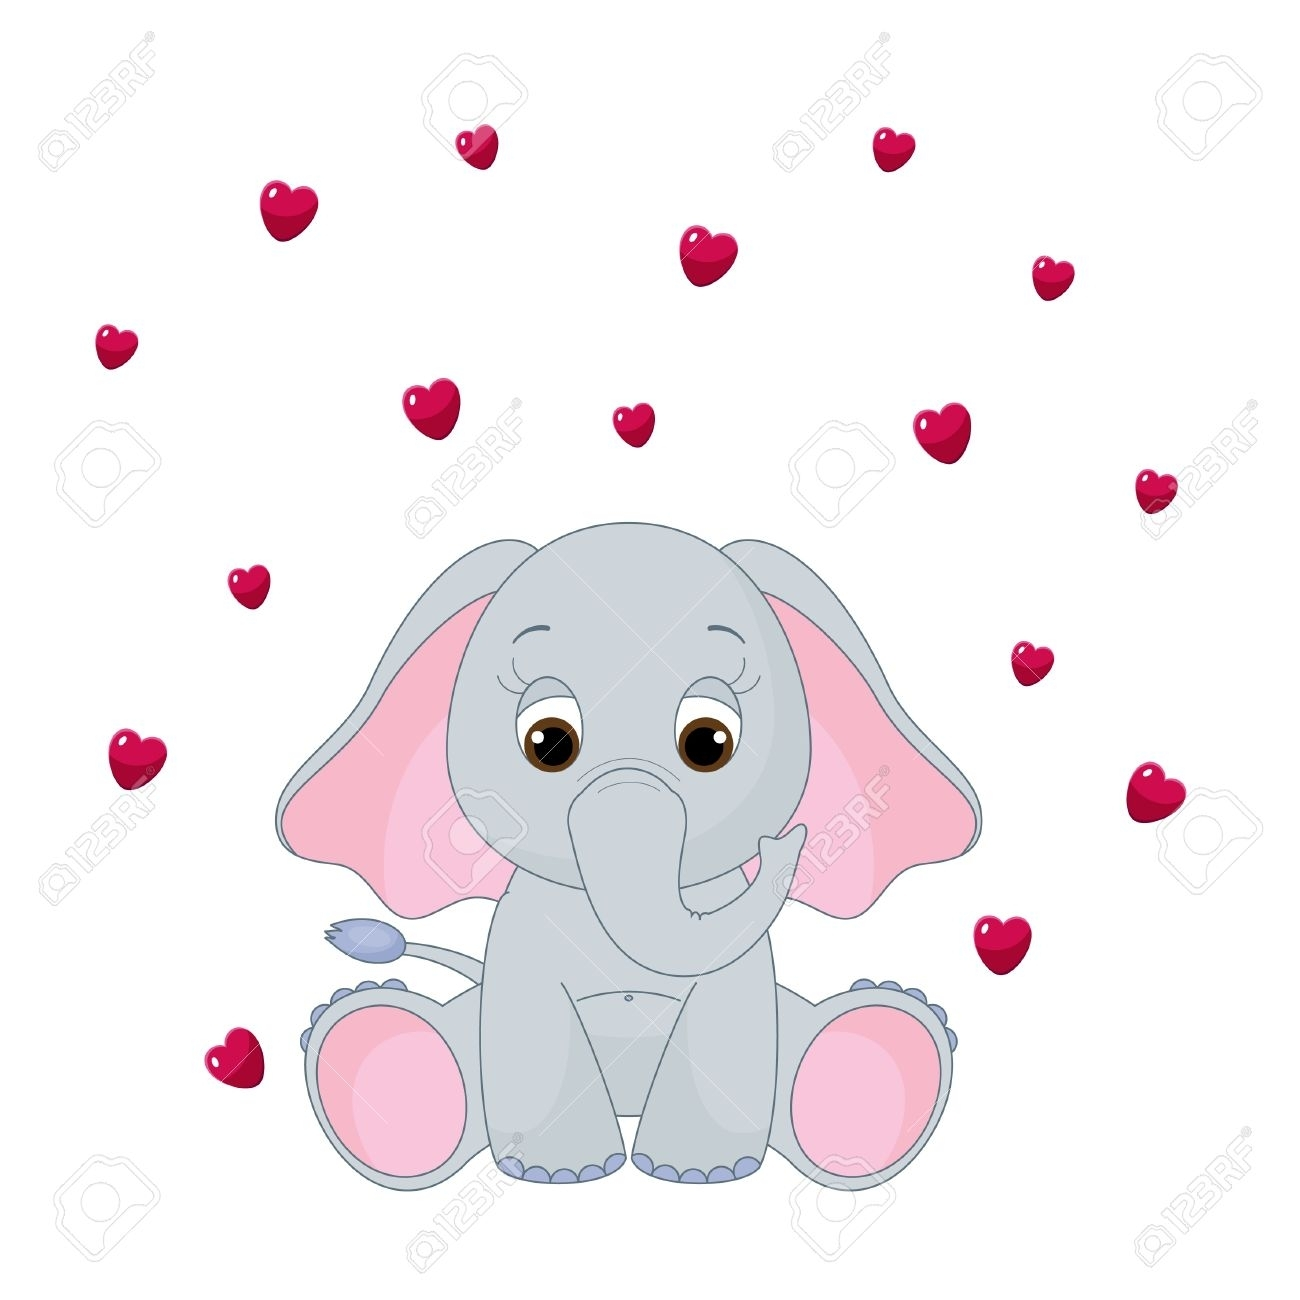 Elephant with hearts clipart transparent stock Elephant With Heart Clipart - clipartsgram.com transparent stock